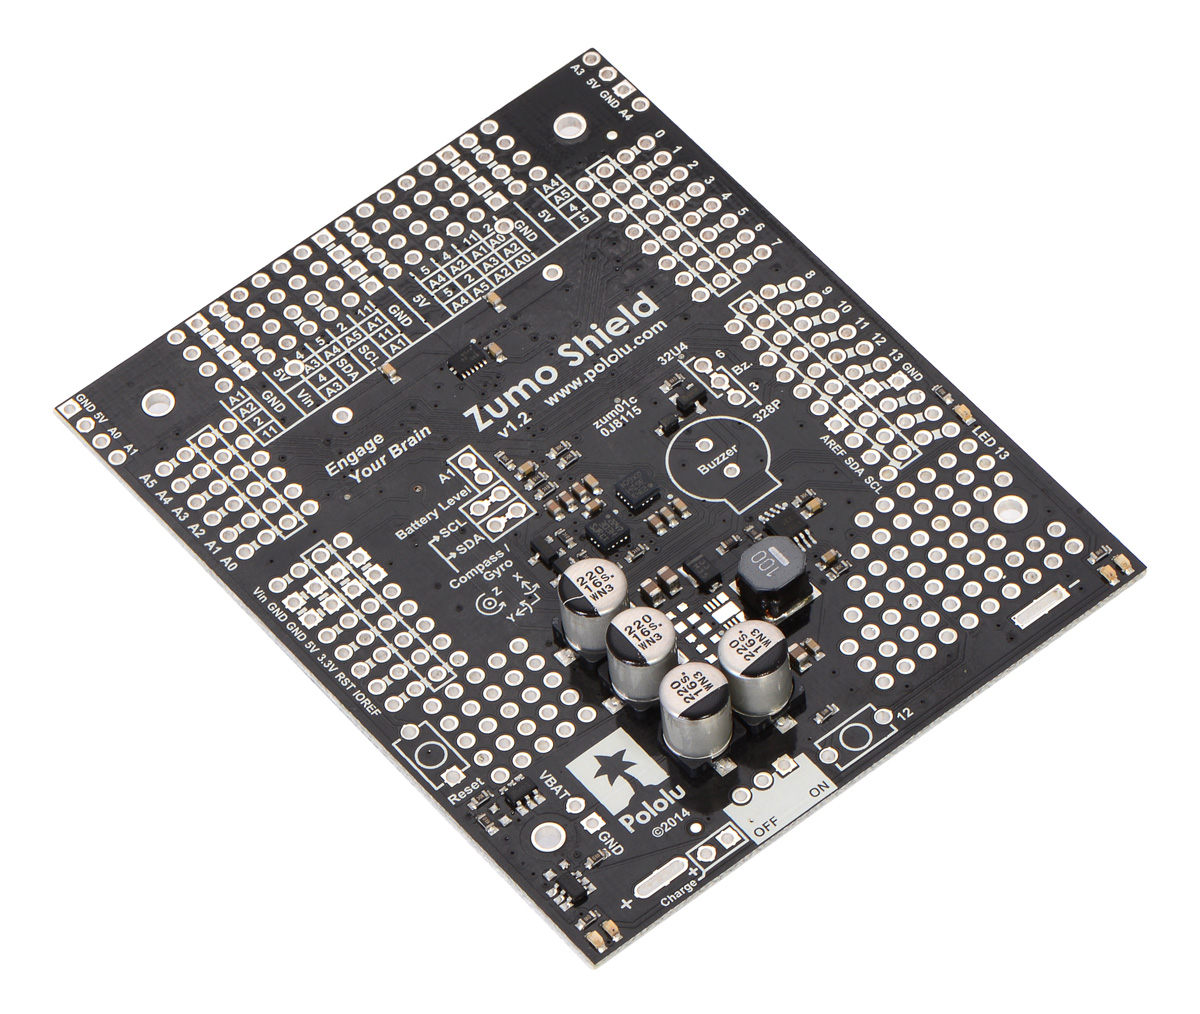 hight resolution of zumo shield for arduino v1 2 as it ships assembled with surface mount components only